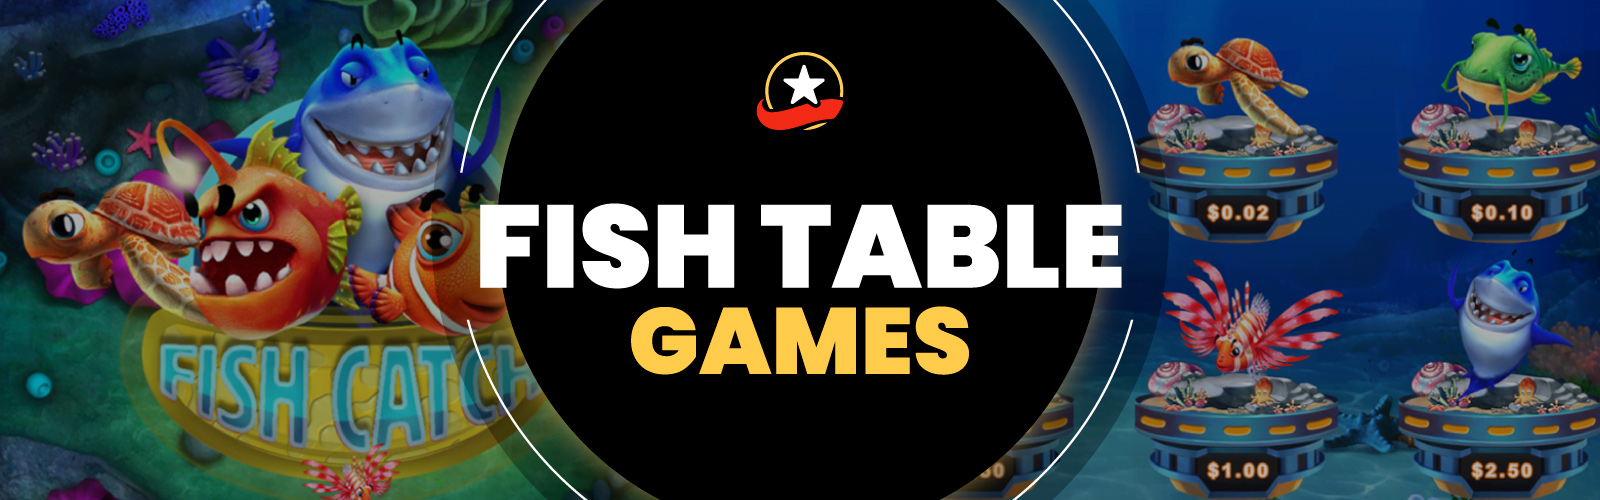 Fish Table Games Online